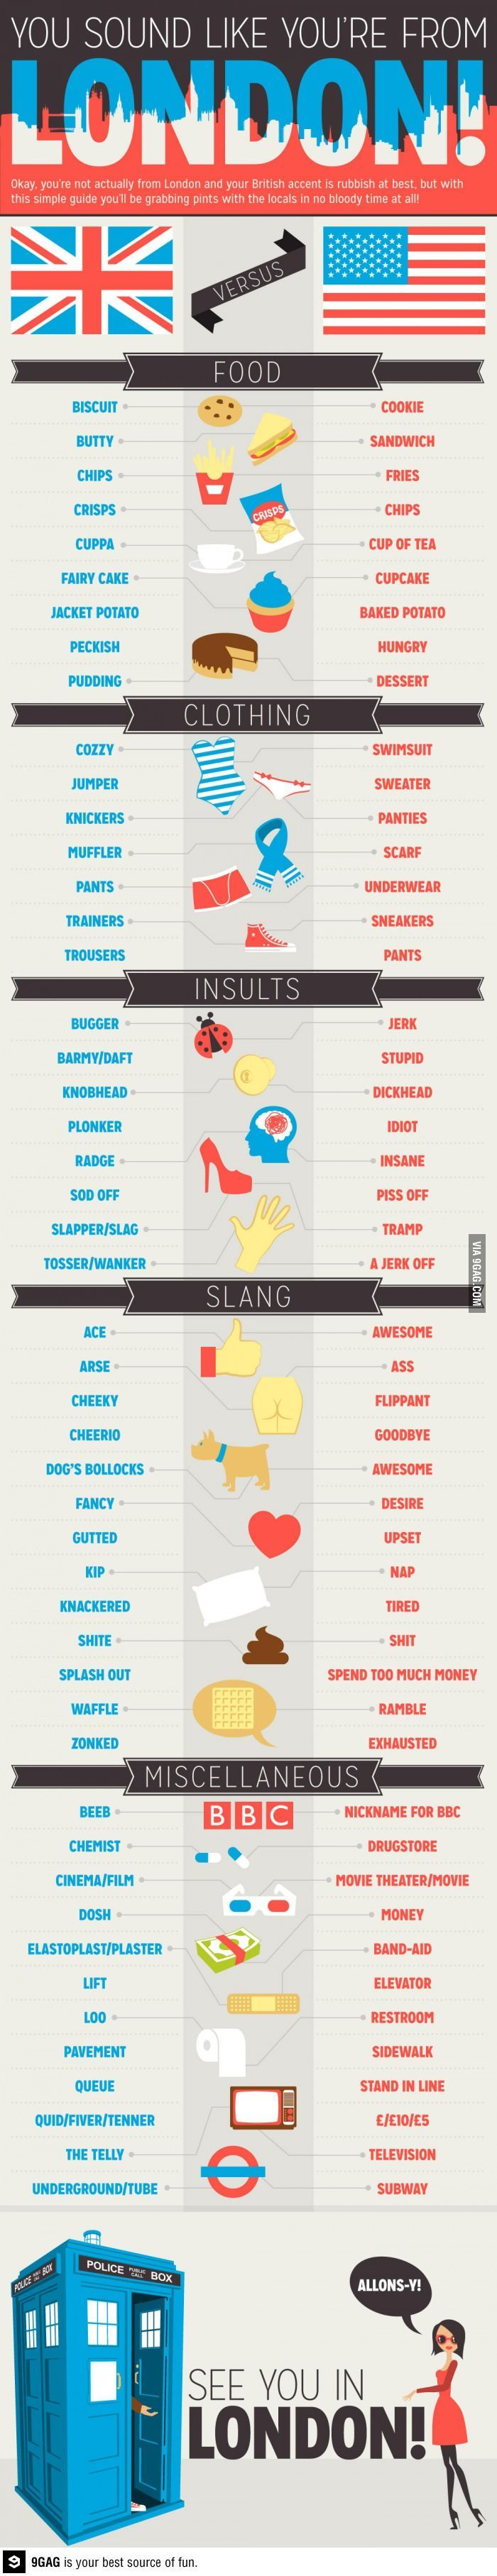 An authentic guide to phrases in London...More or less! It's not perfect but it is lots of fun.